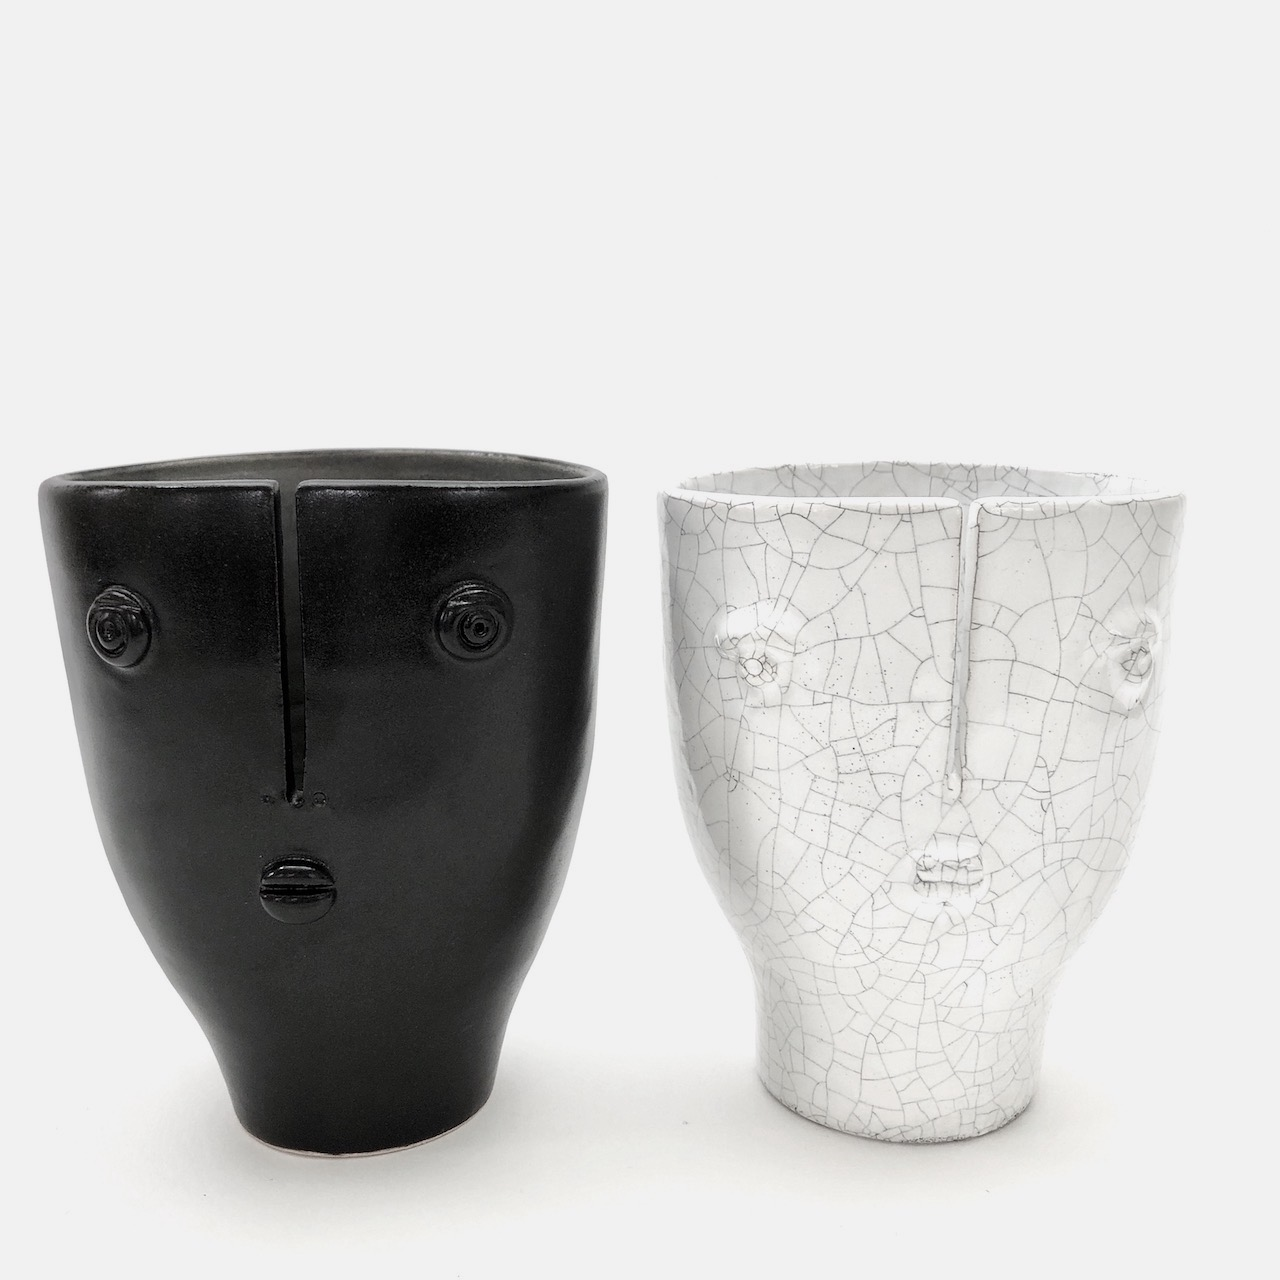 DaLo - Pair of Small Ceramic Idoles Vases